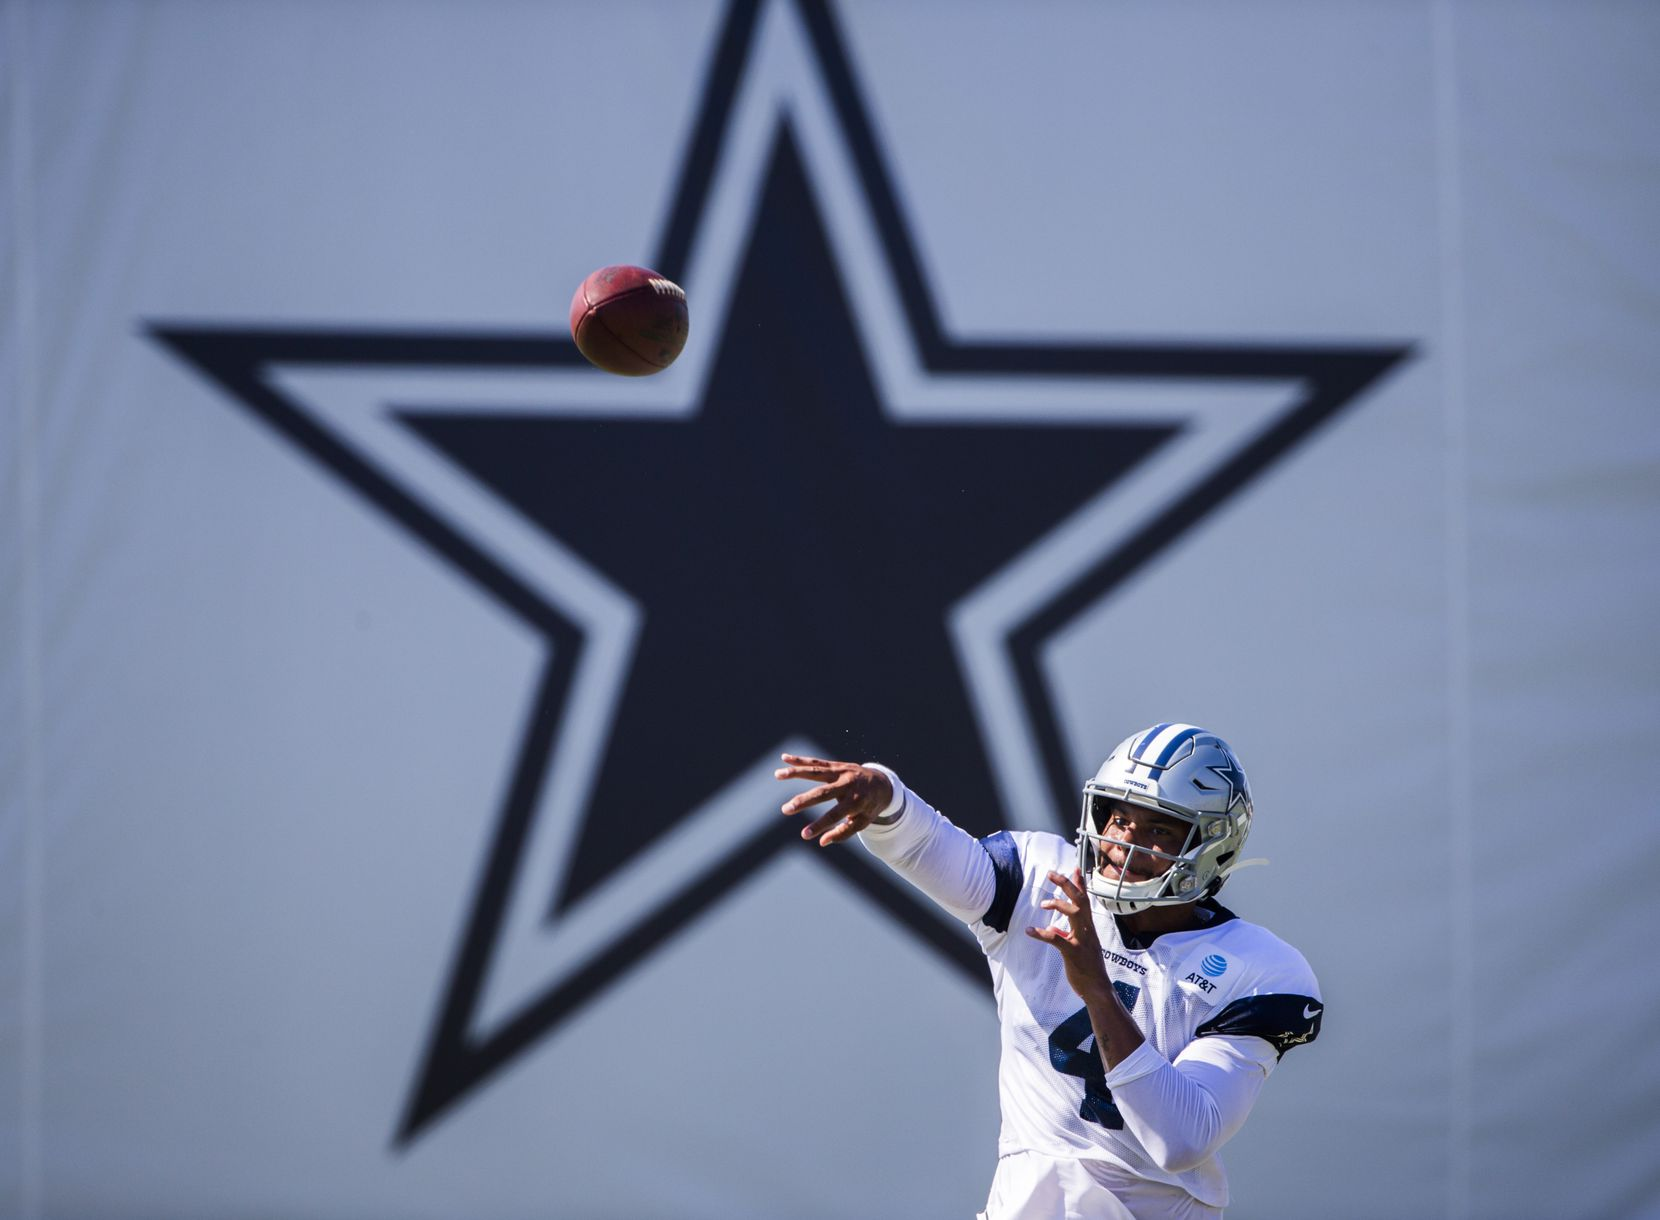 Dallas Cowboys quarterback Dak Prescott (4) throws a pass during an afternoon practice at training camp in Oxnard, Calif., on Monday, July 29, 2019.